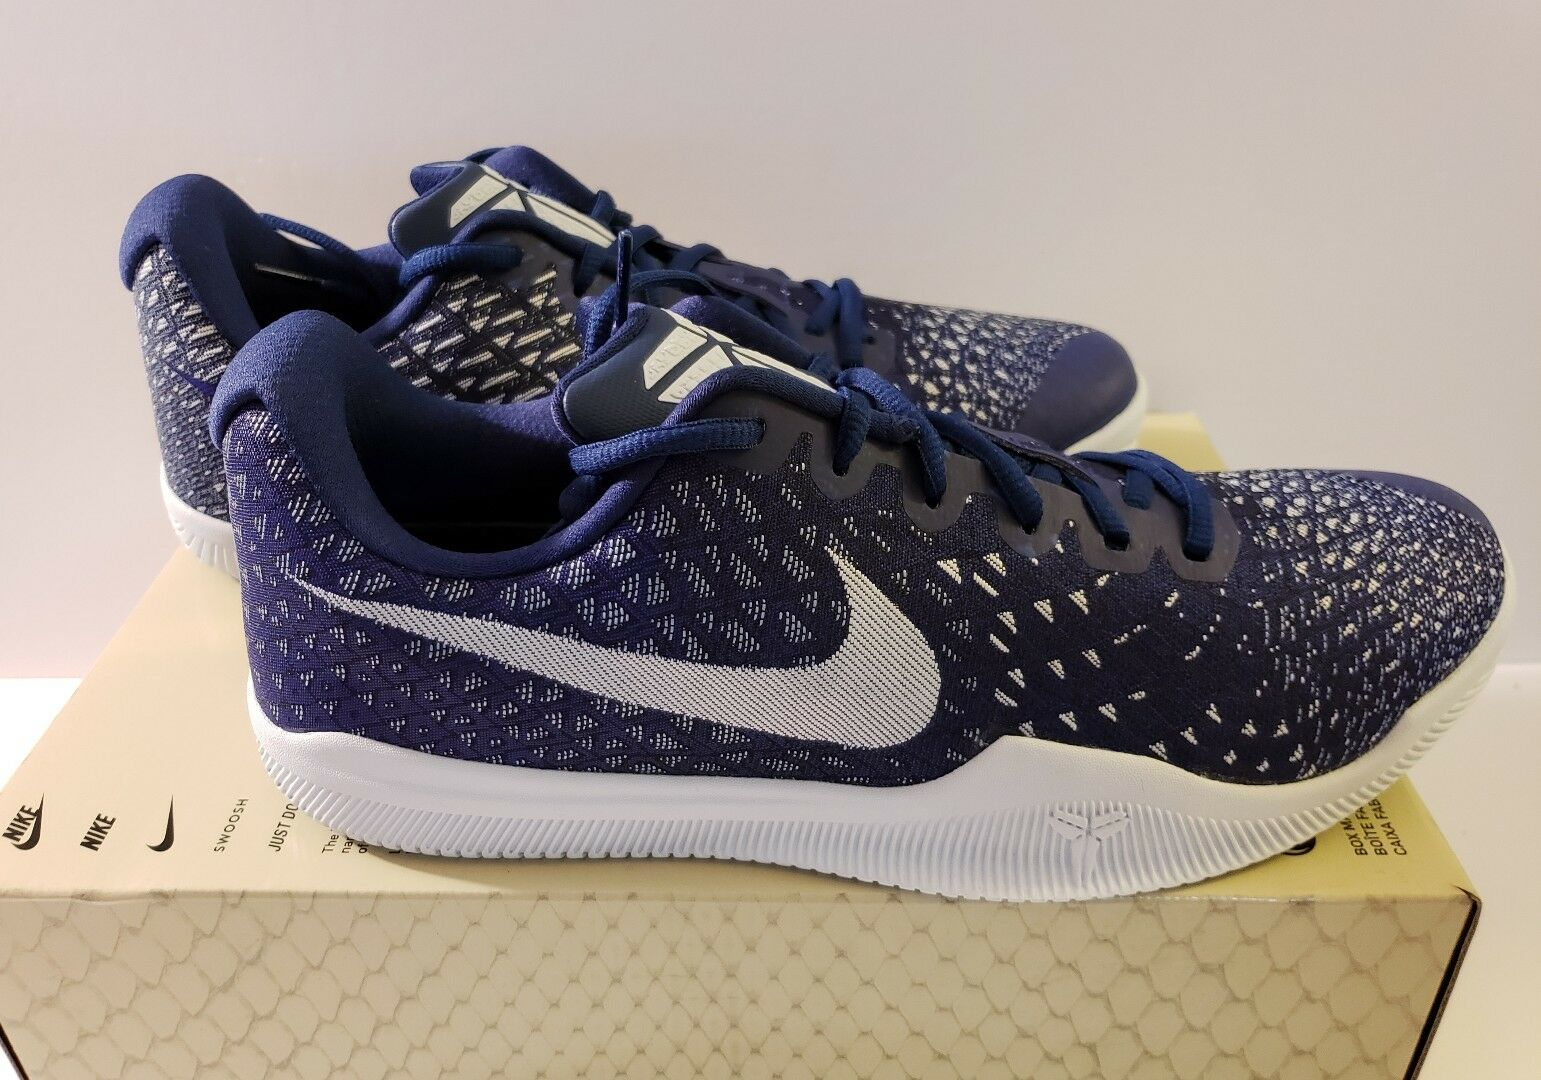 NIKE MAMBA INSTINCT Size 10 - 852473 400 blueE TINT ATHLETIC BASKETBALL NWB